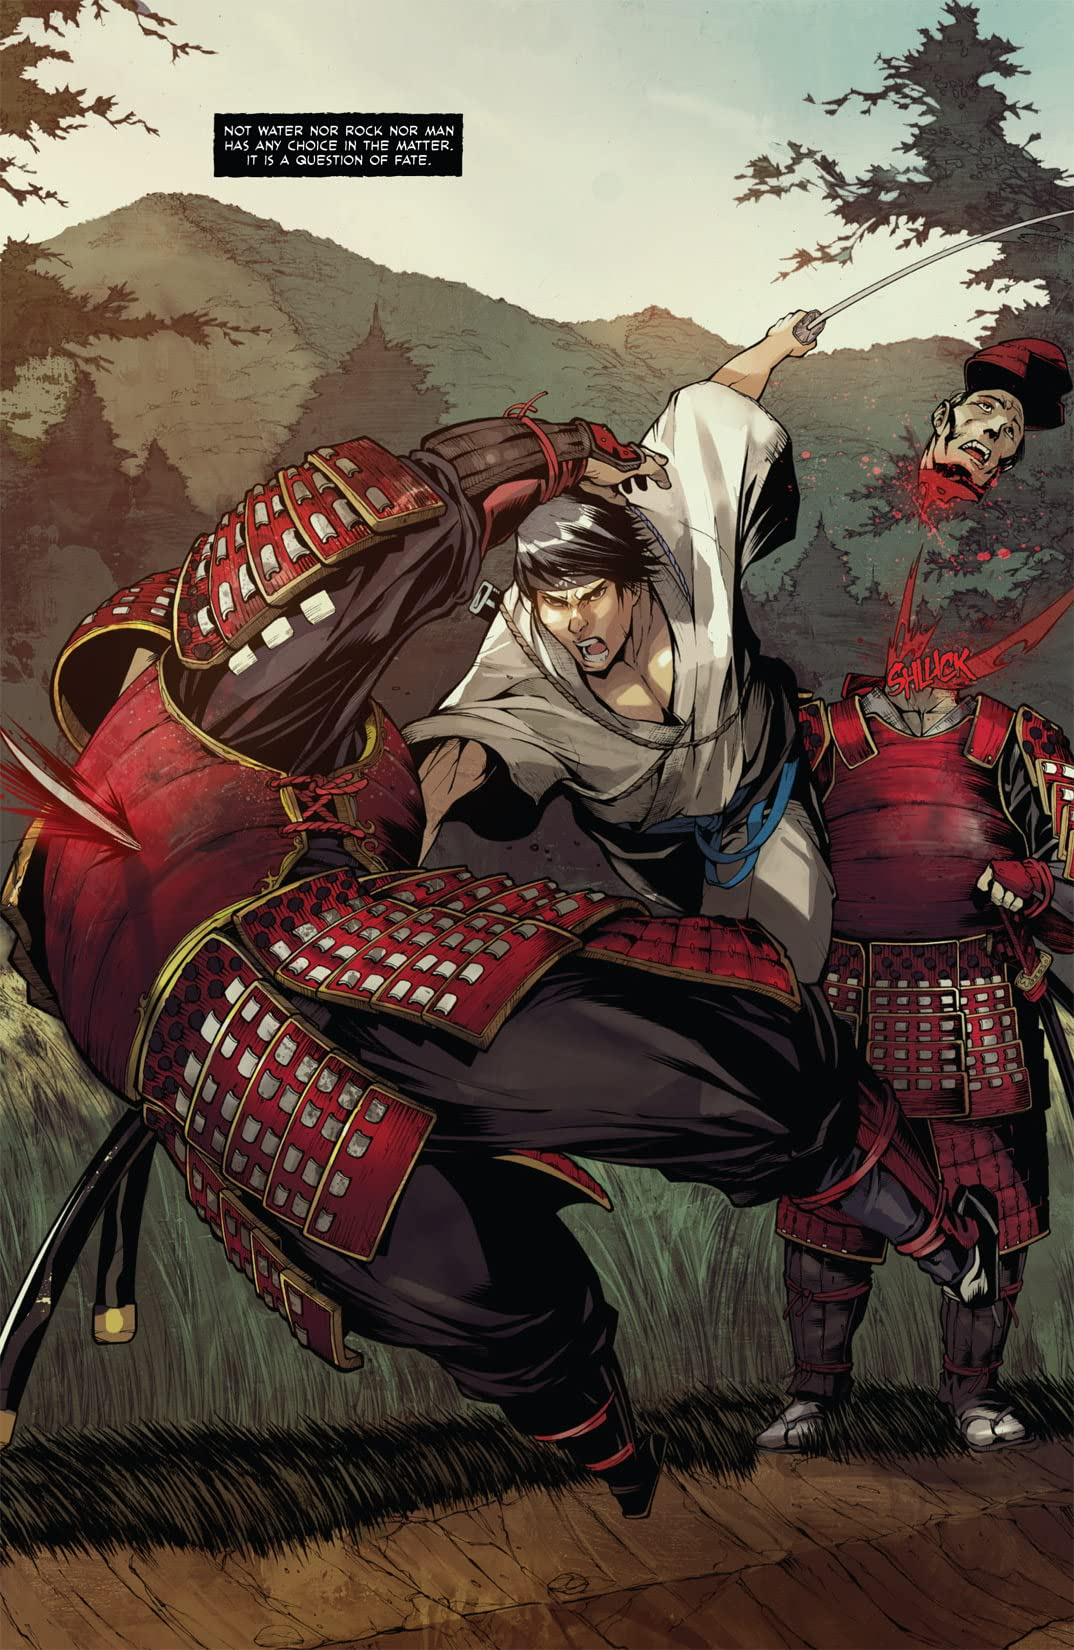 Samurai's Blood Vol. 1